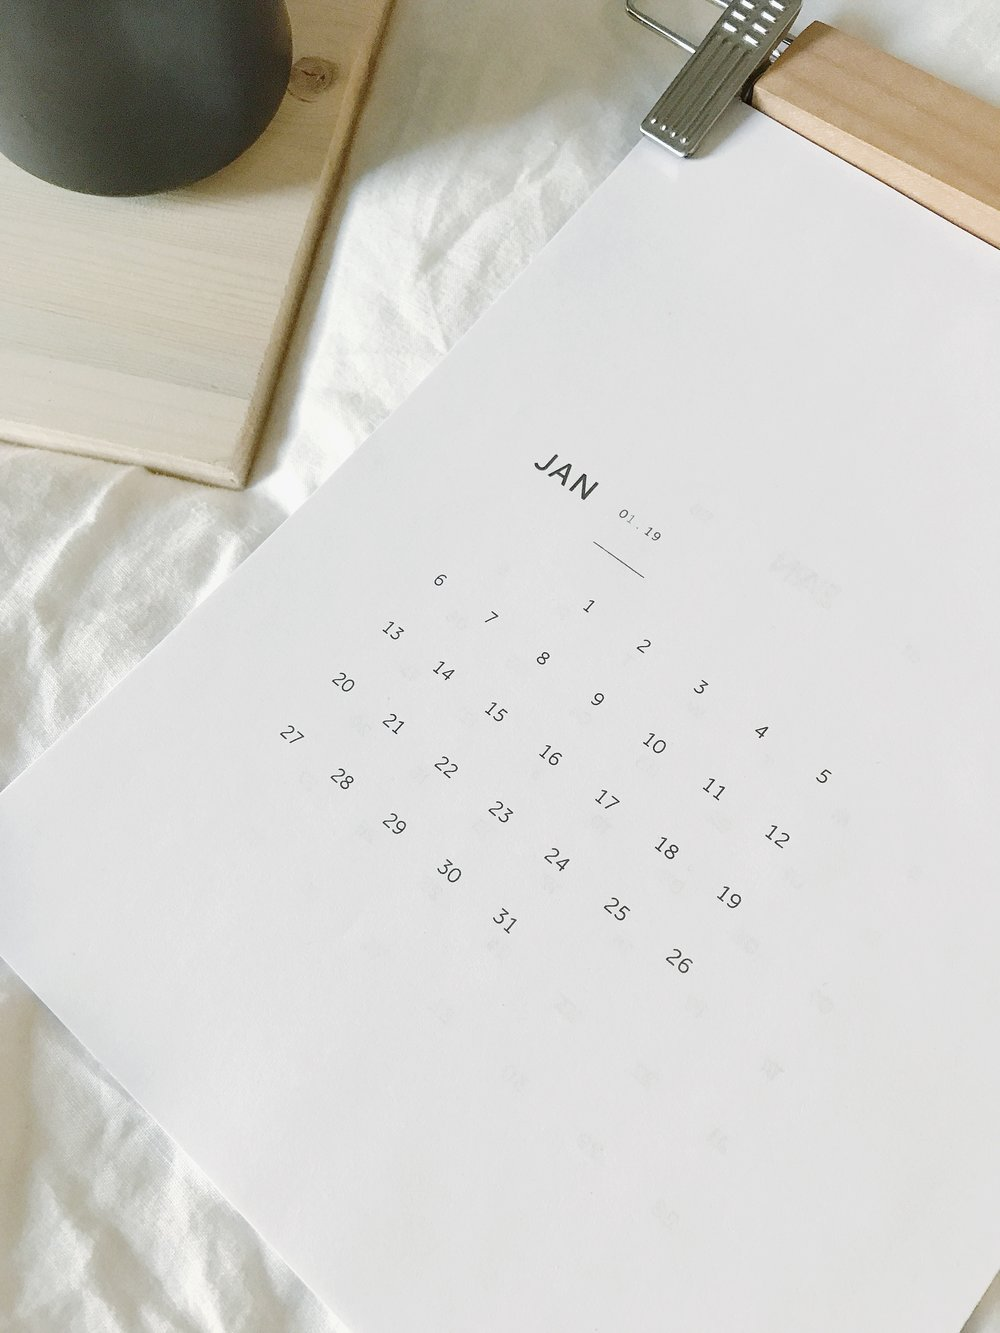 2019 Free Calendar by Lauren Sauder printable calendar, free download calendar, desk calendar, 2019 calendar, monthly calendar, new year calendar